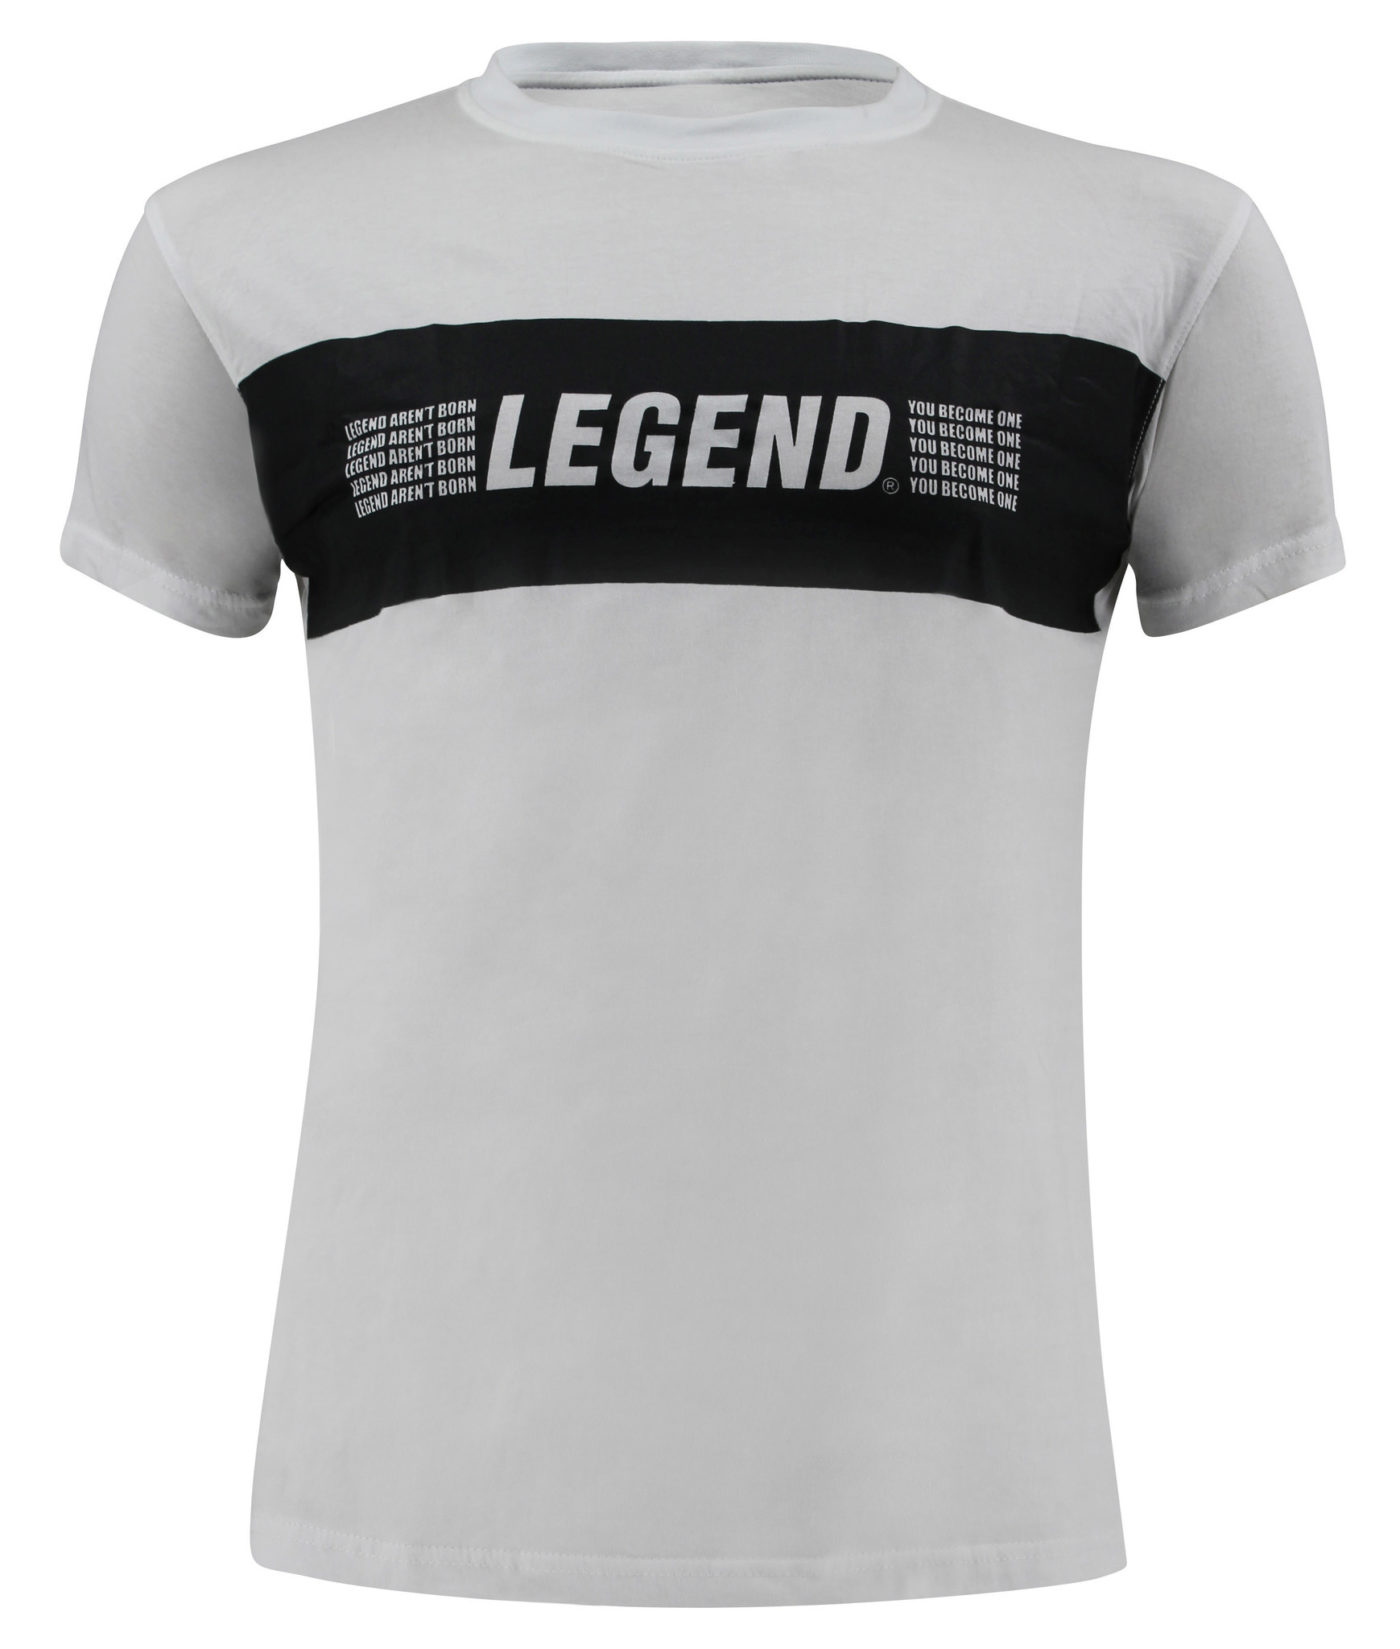 T-Shirt wit Legends Aren't born, you become one -